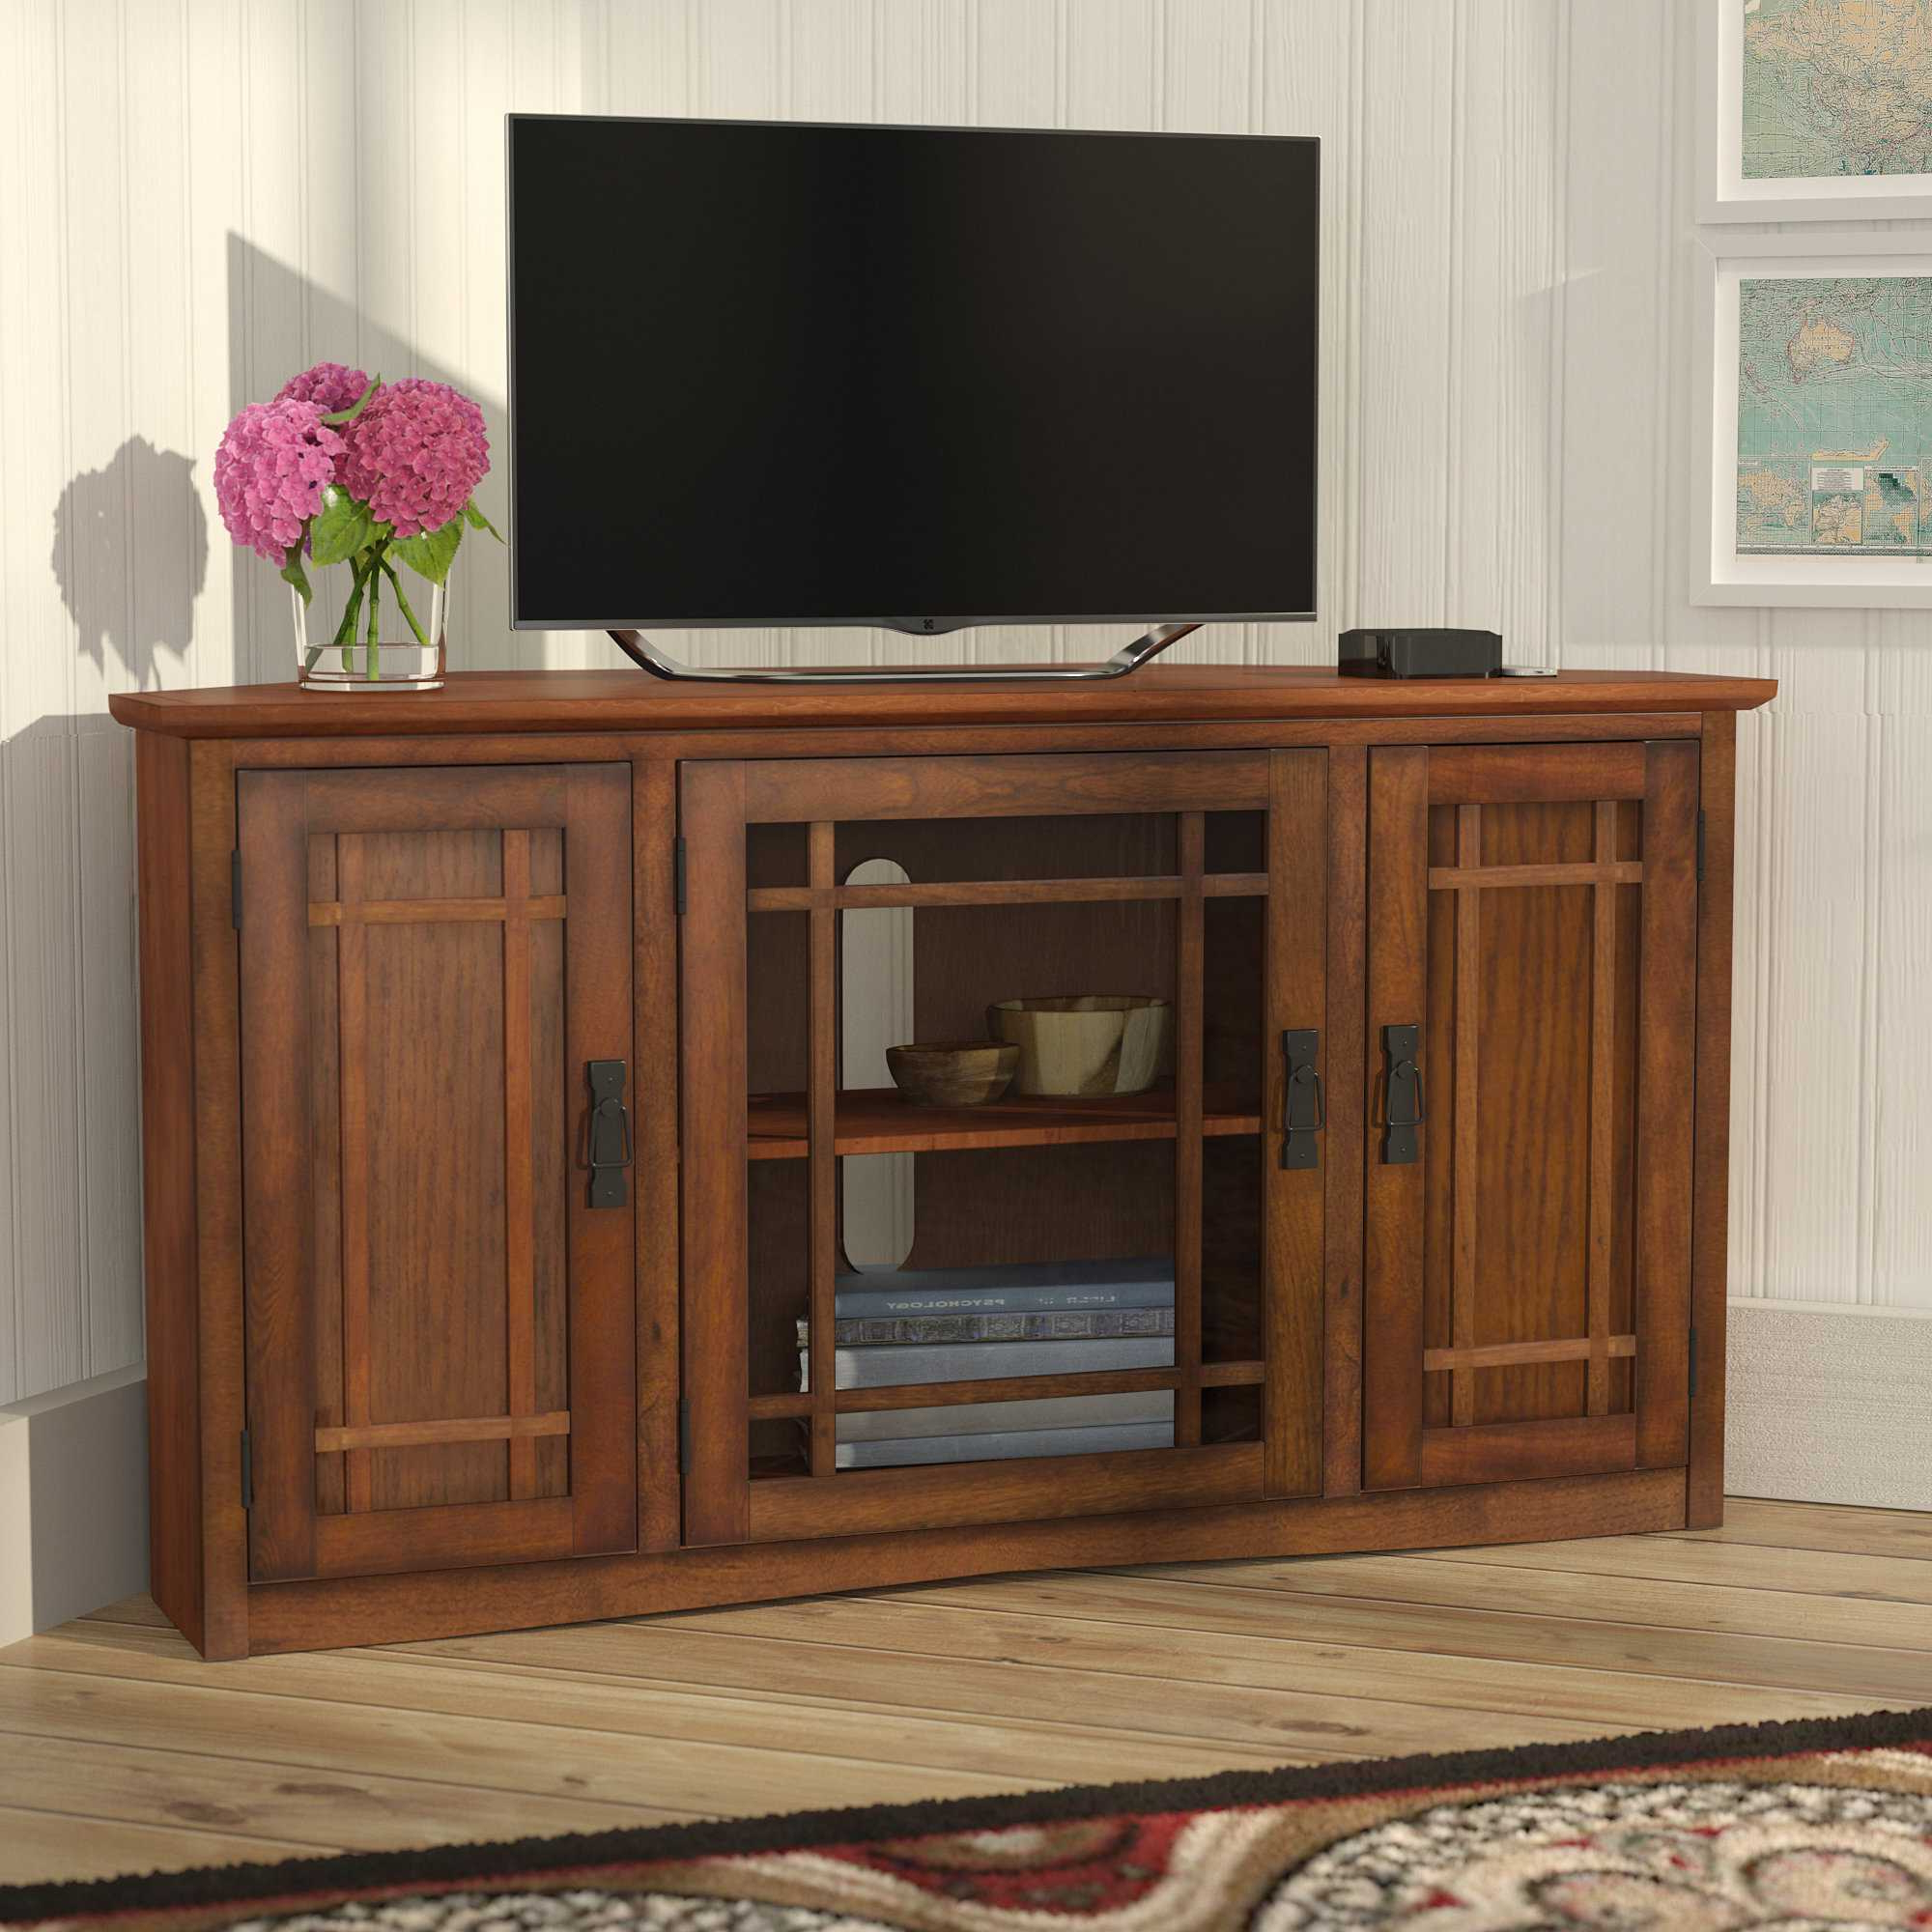 Widely Used Modern Corner Tv Stands For Flat Screens Images Also Fabulous Small With Corner Tv Cabinets For Flat Screen (View 20 of 20)